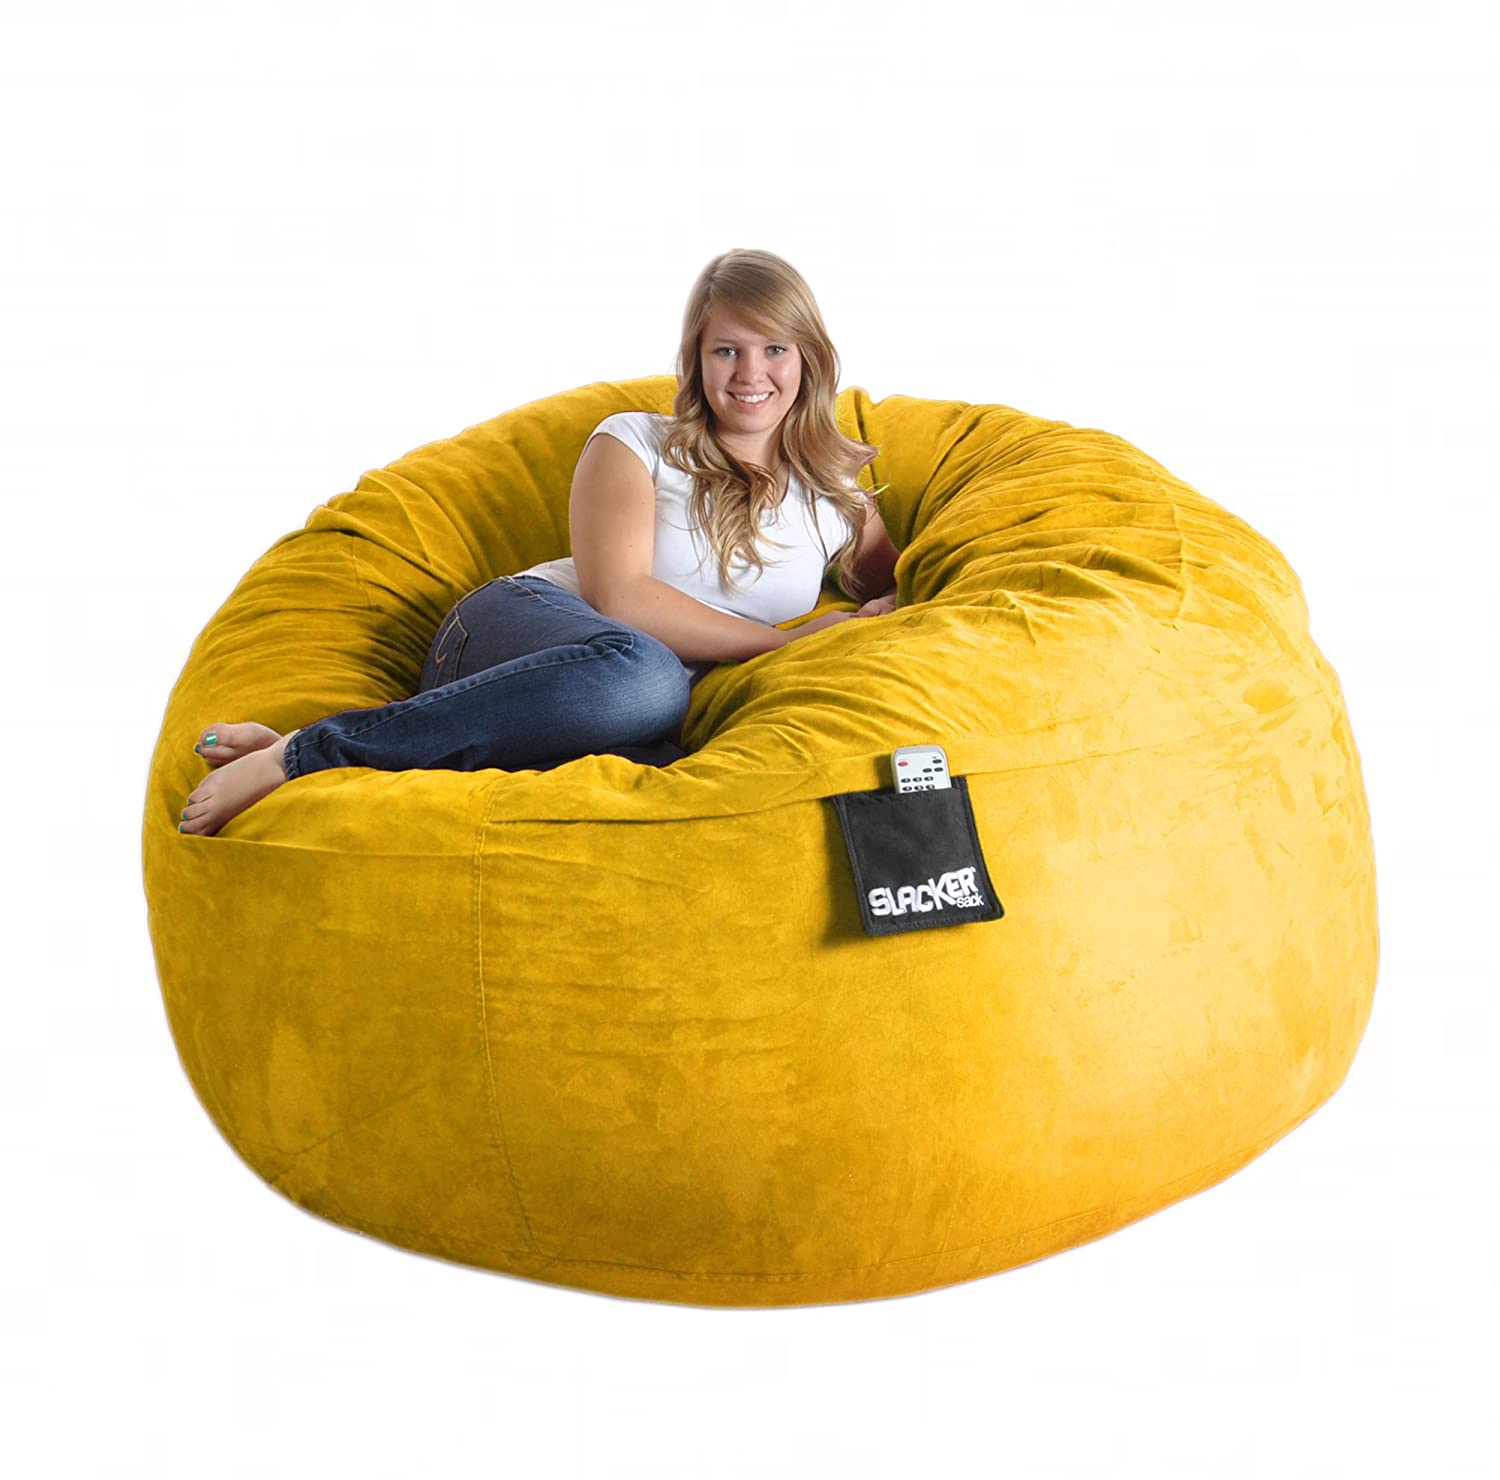 Giant bean bag chairs for adults - Amazon Com 6 Round Yellow Foam Beanbag Chair Huge Slacker Sack Microsuede Cover Lemon Xl Kitchen Dining